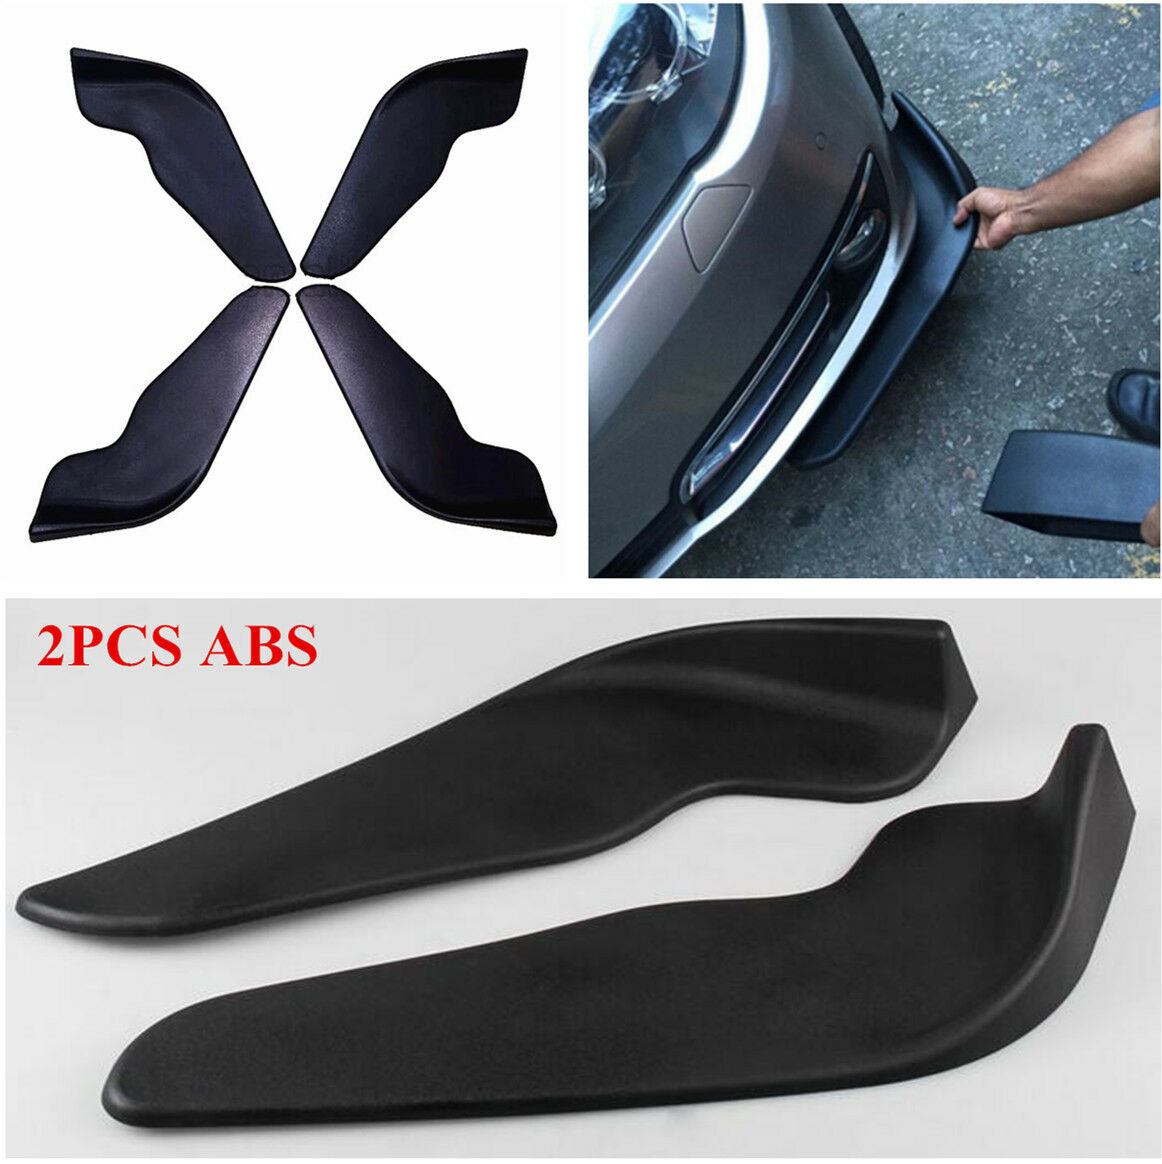 Car Parts - 2 Pcs Car Vehicle Bumper Spoiler Front Shovel Decorative Scratch Resistant Wing